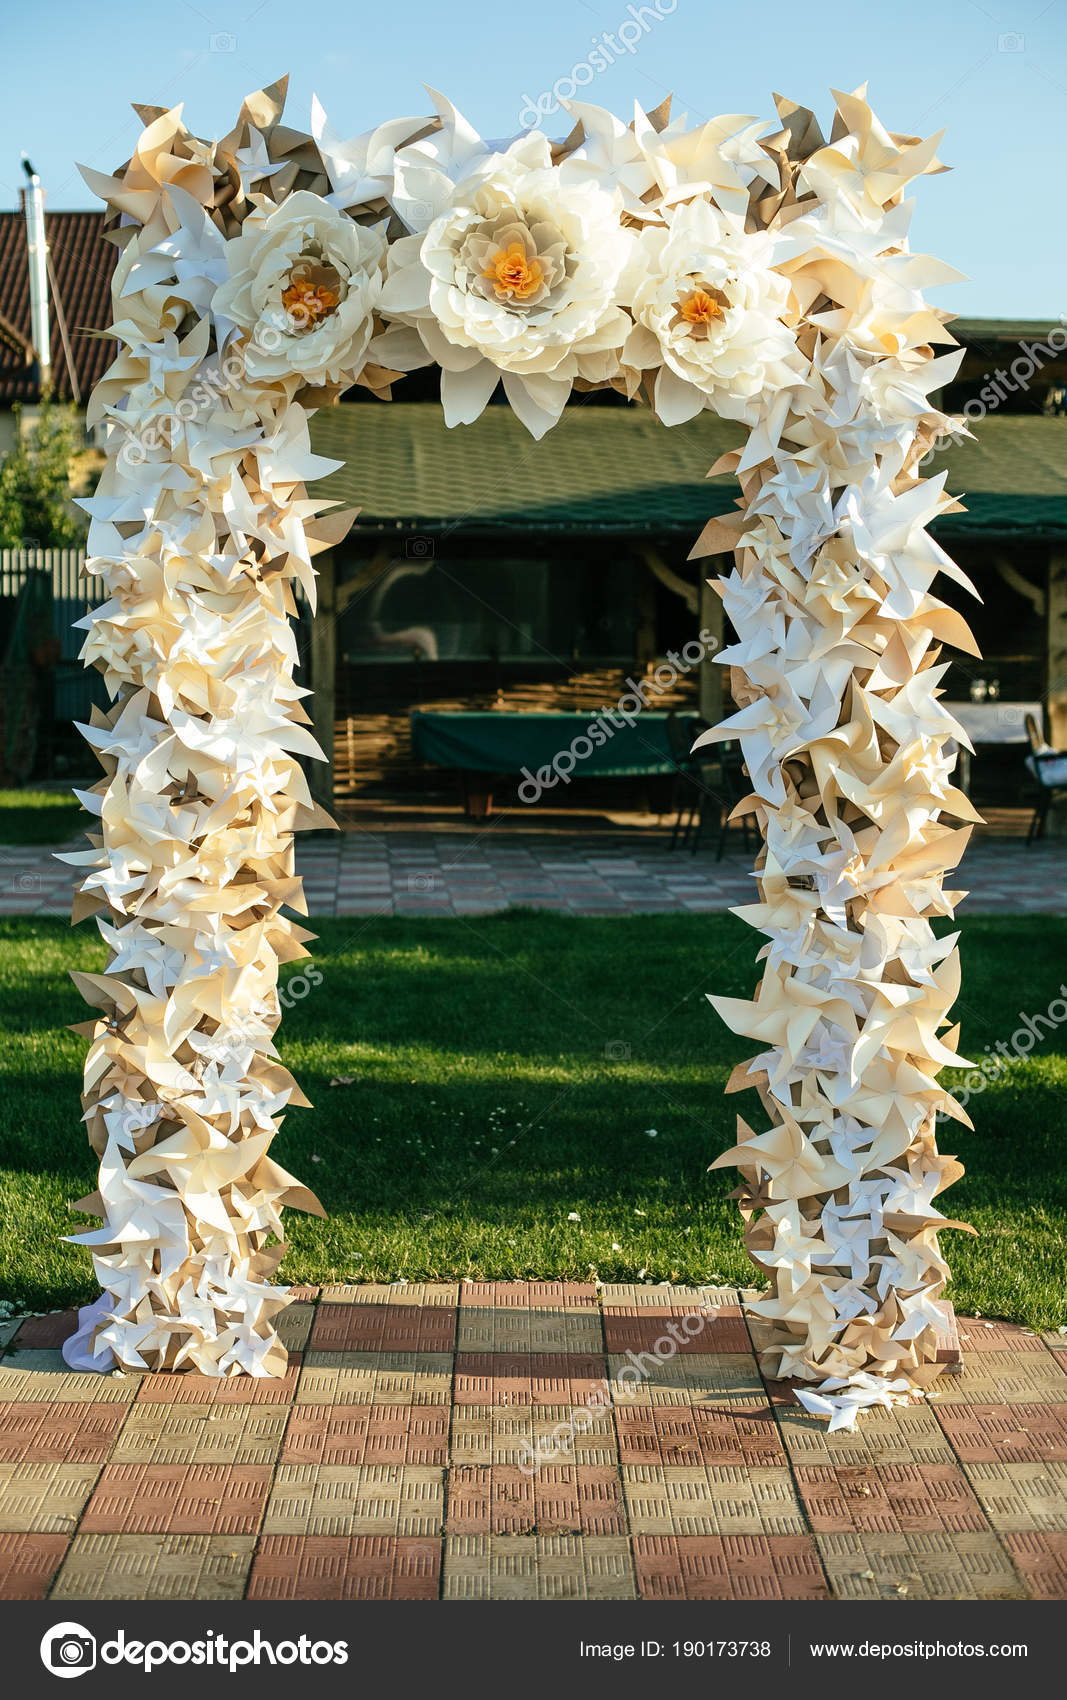 Paper flowers in wedding decor luxury wedding decorations for paper flowers in wedding decor luxury wedding decorations for ceremony wedding arch with flowers junglespirit Image collections